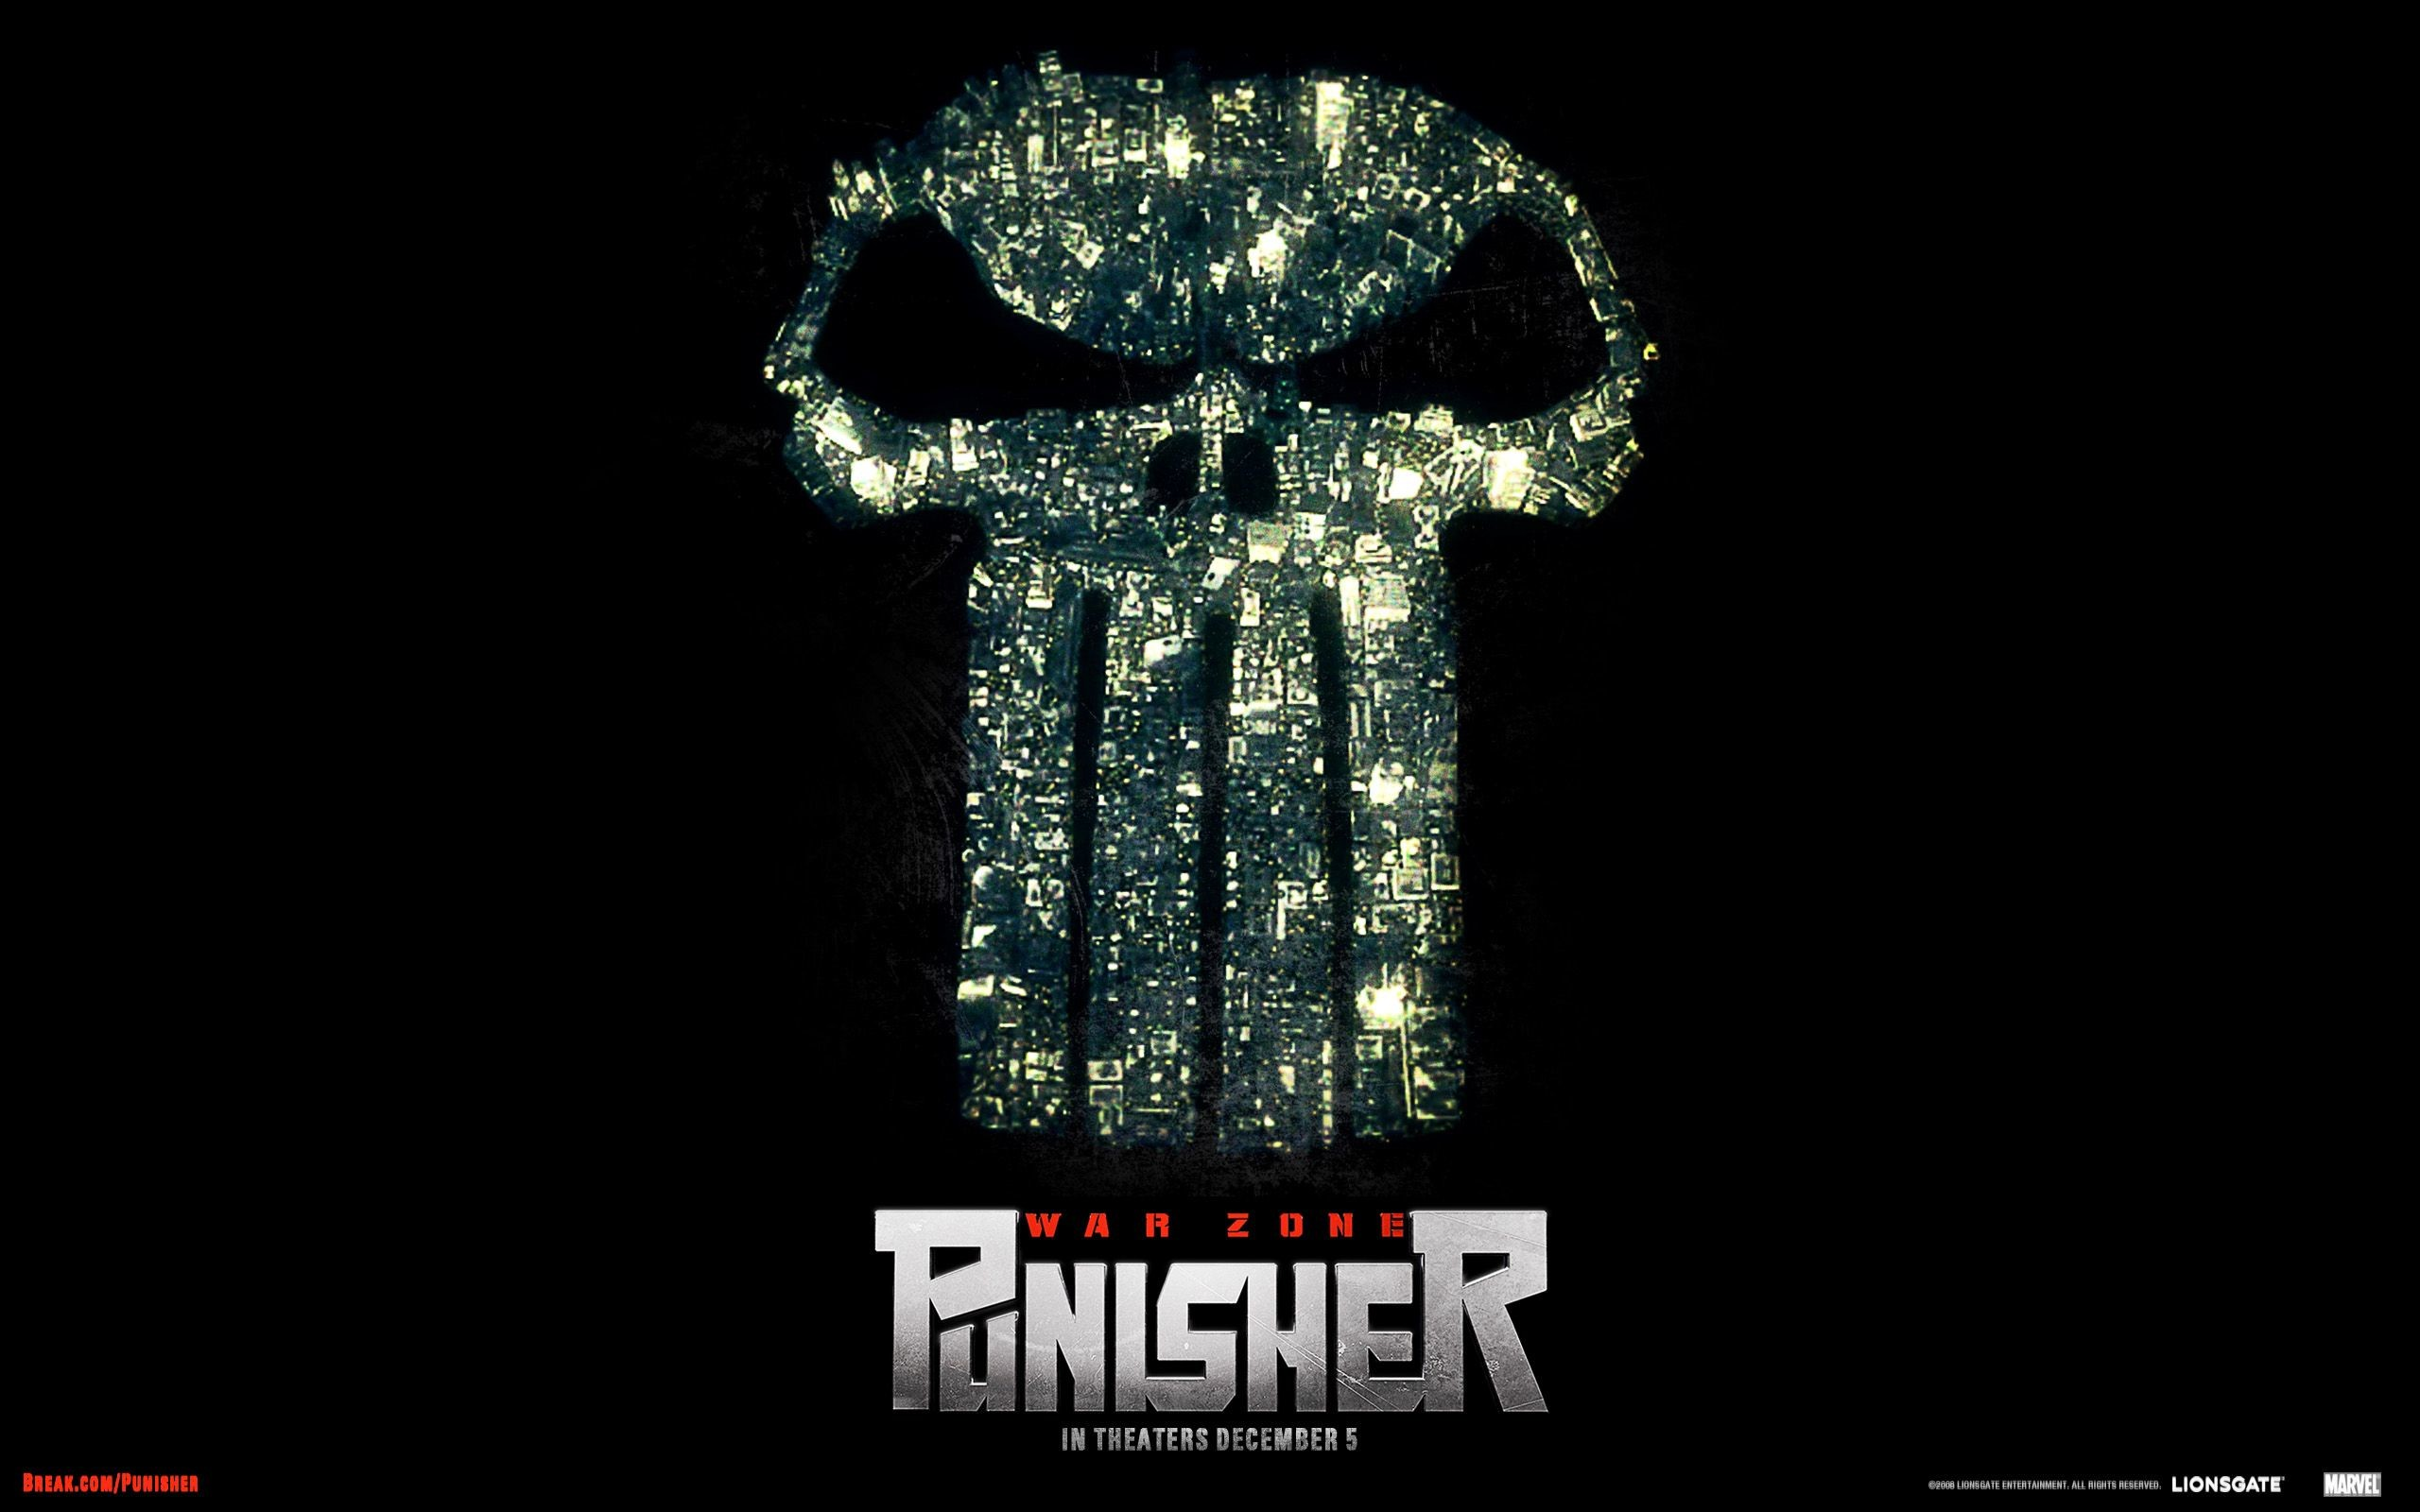 2560x1600 Punisher Official Punisher: War Zone Wallpaper 6 Wallpaper .